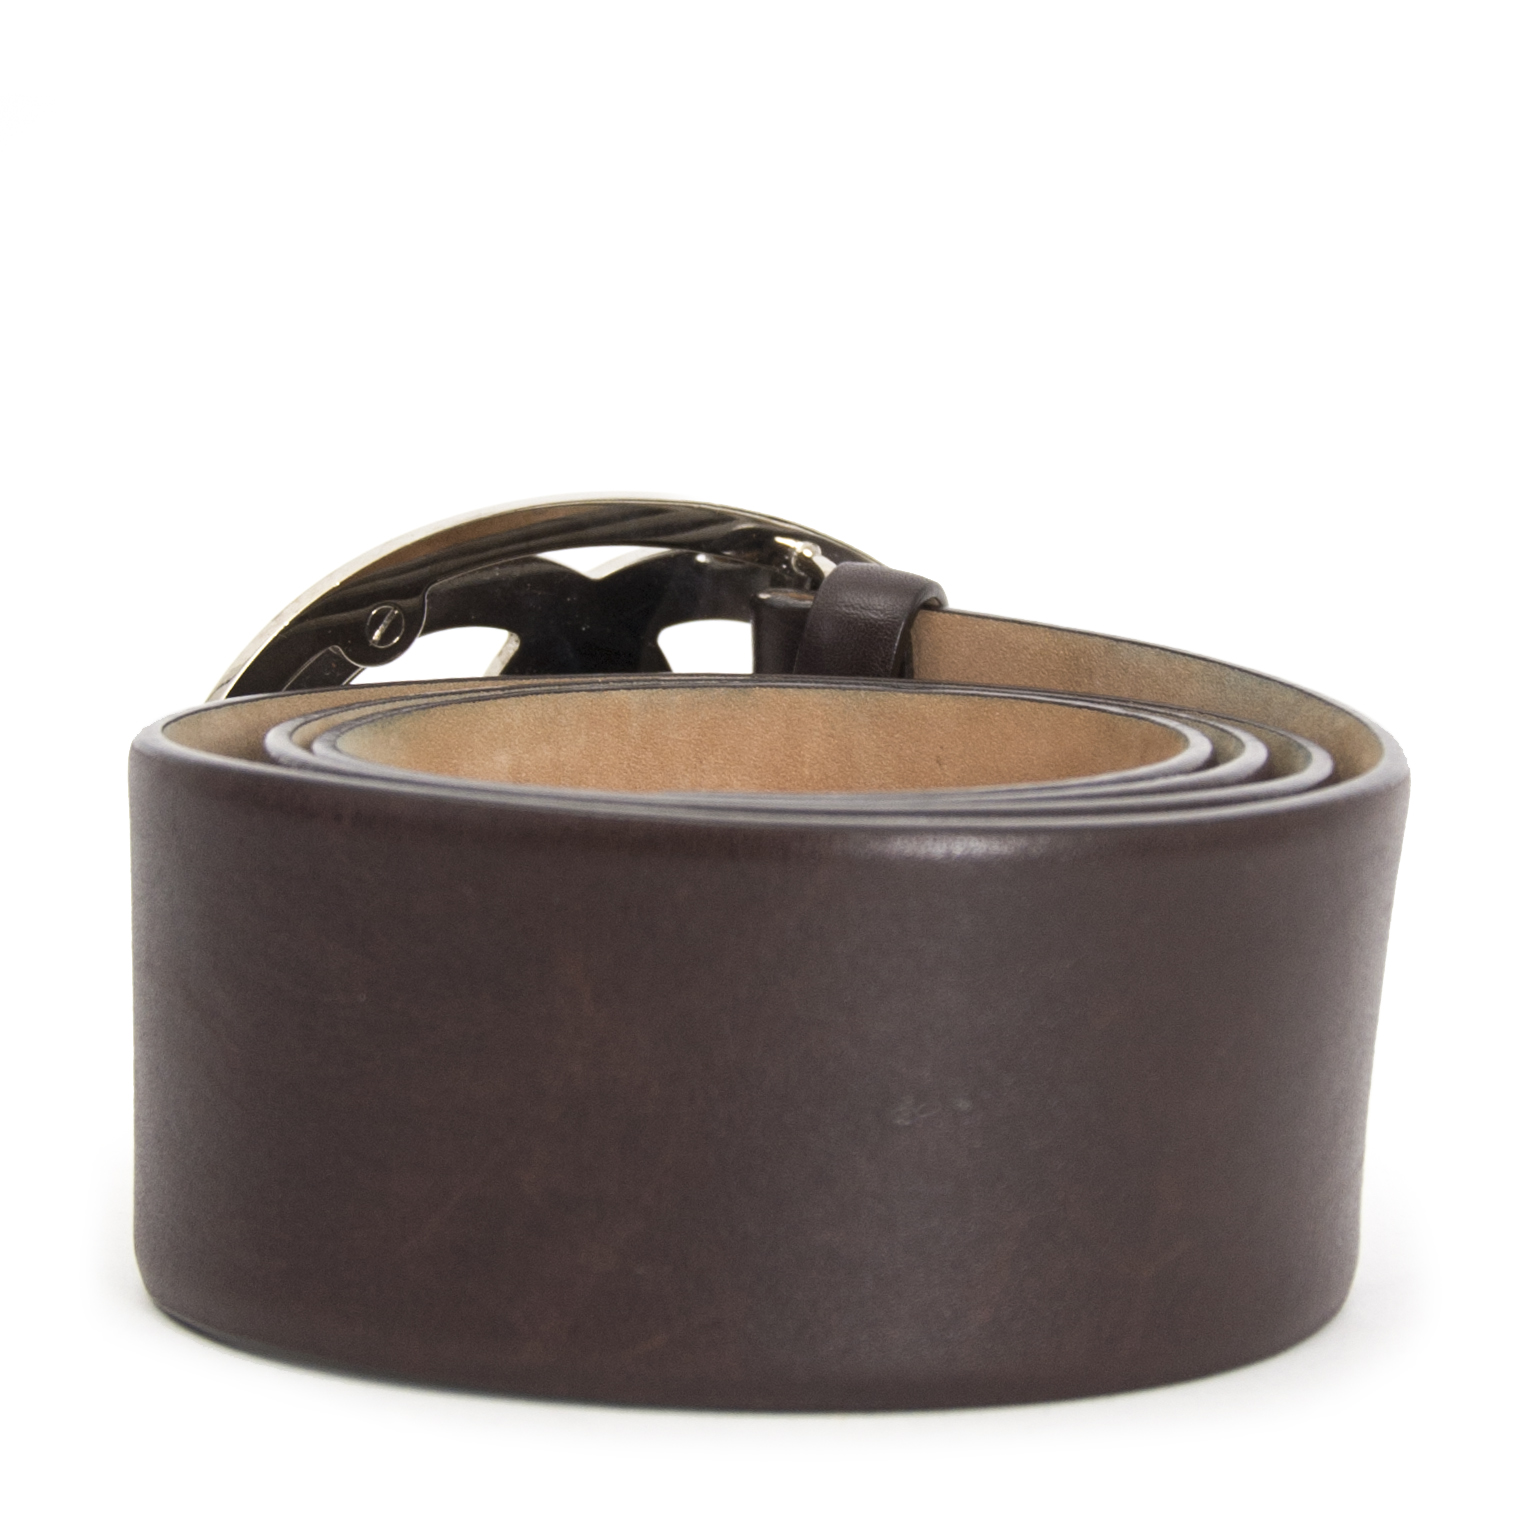 Are you looking for an authentic Chanel Brown Leather Belt?